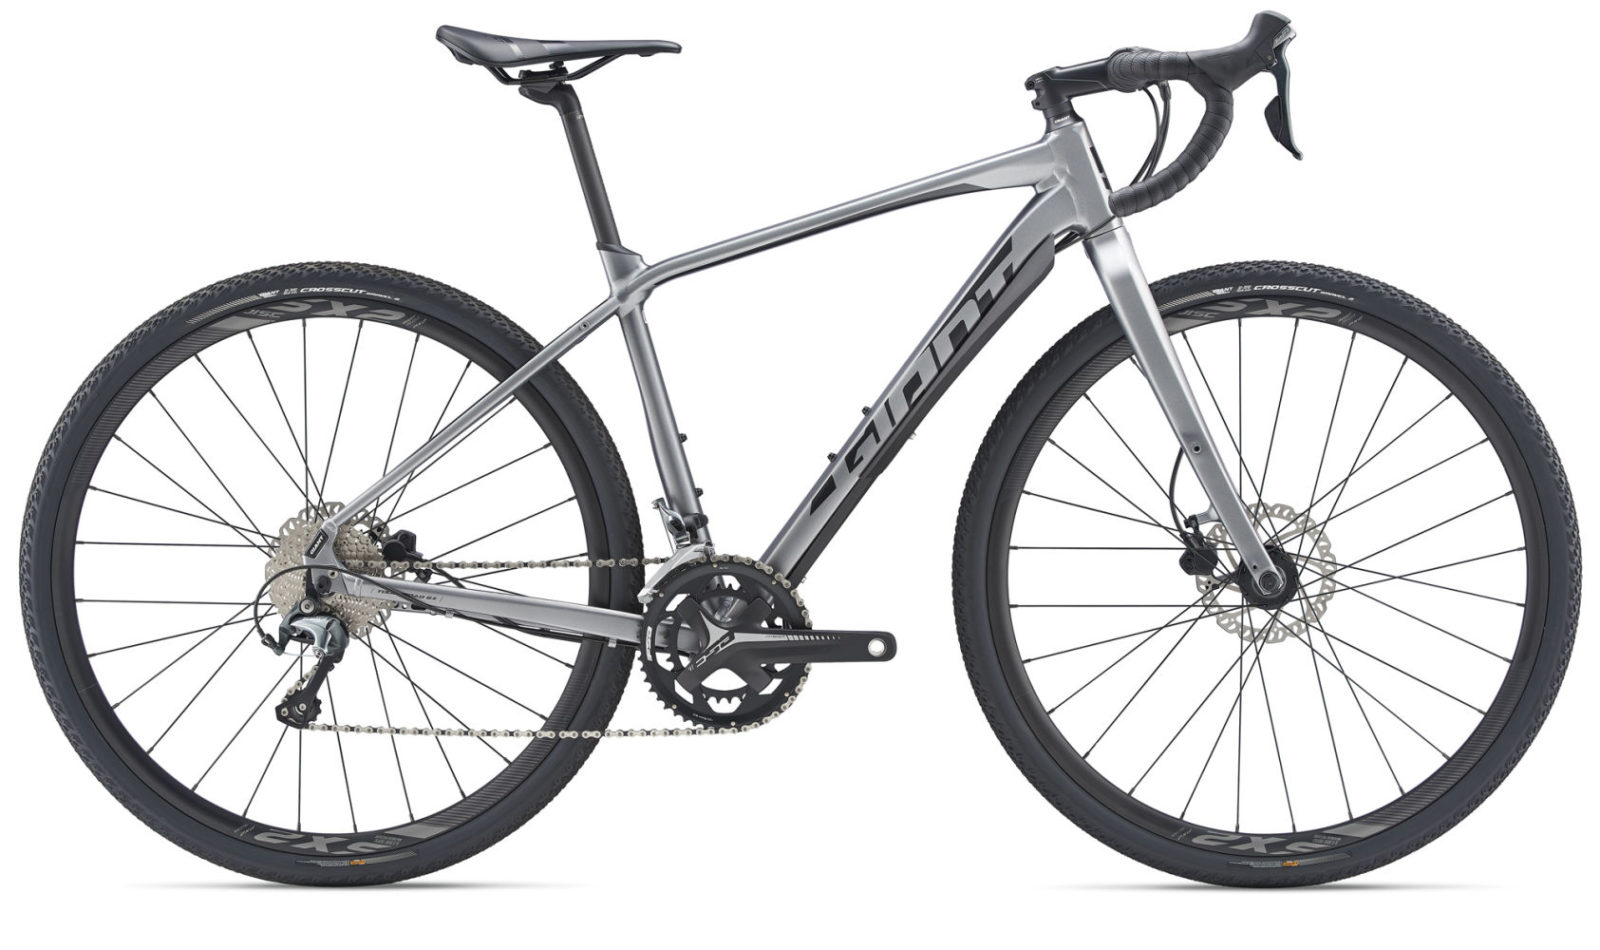 Giant X-Road Toughroad GX SLR 1 2019